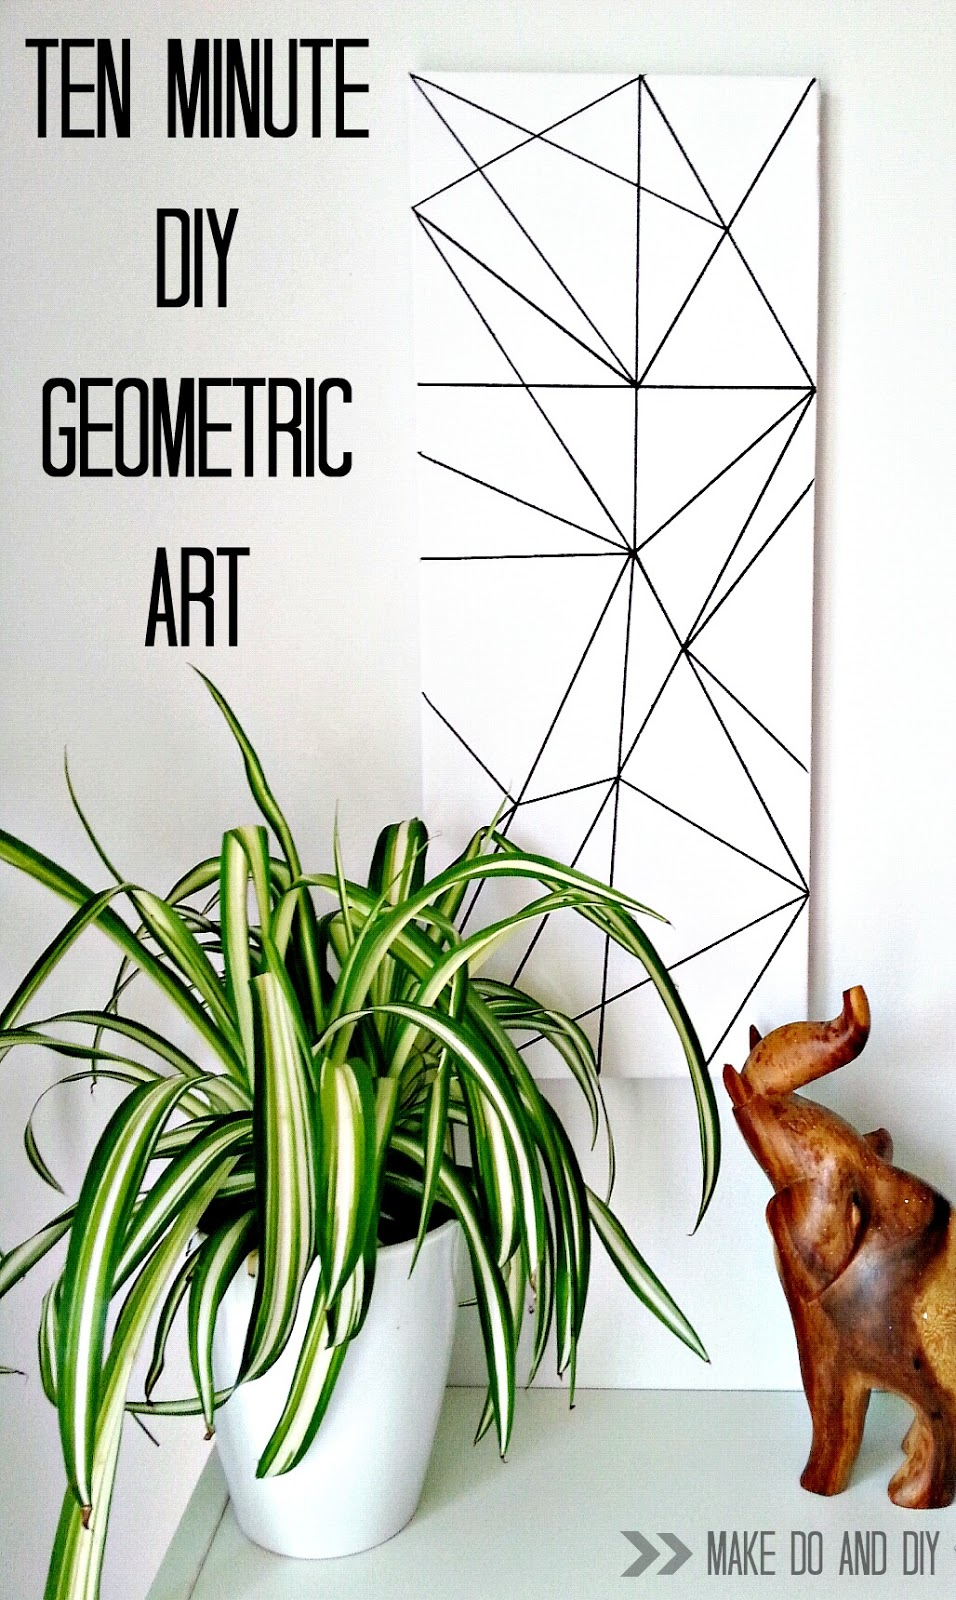 The simplest diy geometric art....or how to fool your ...